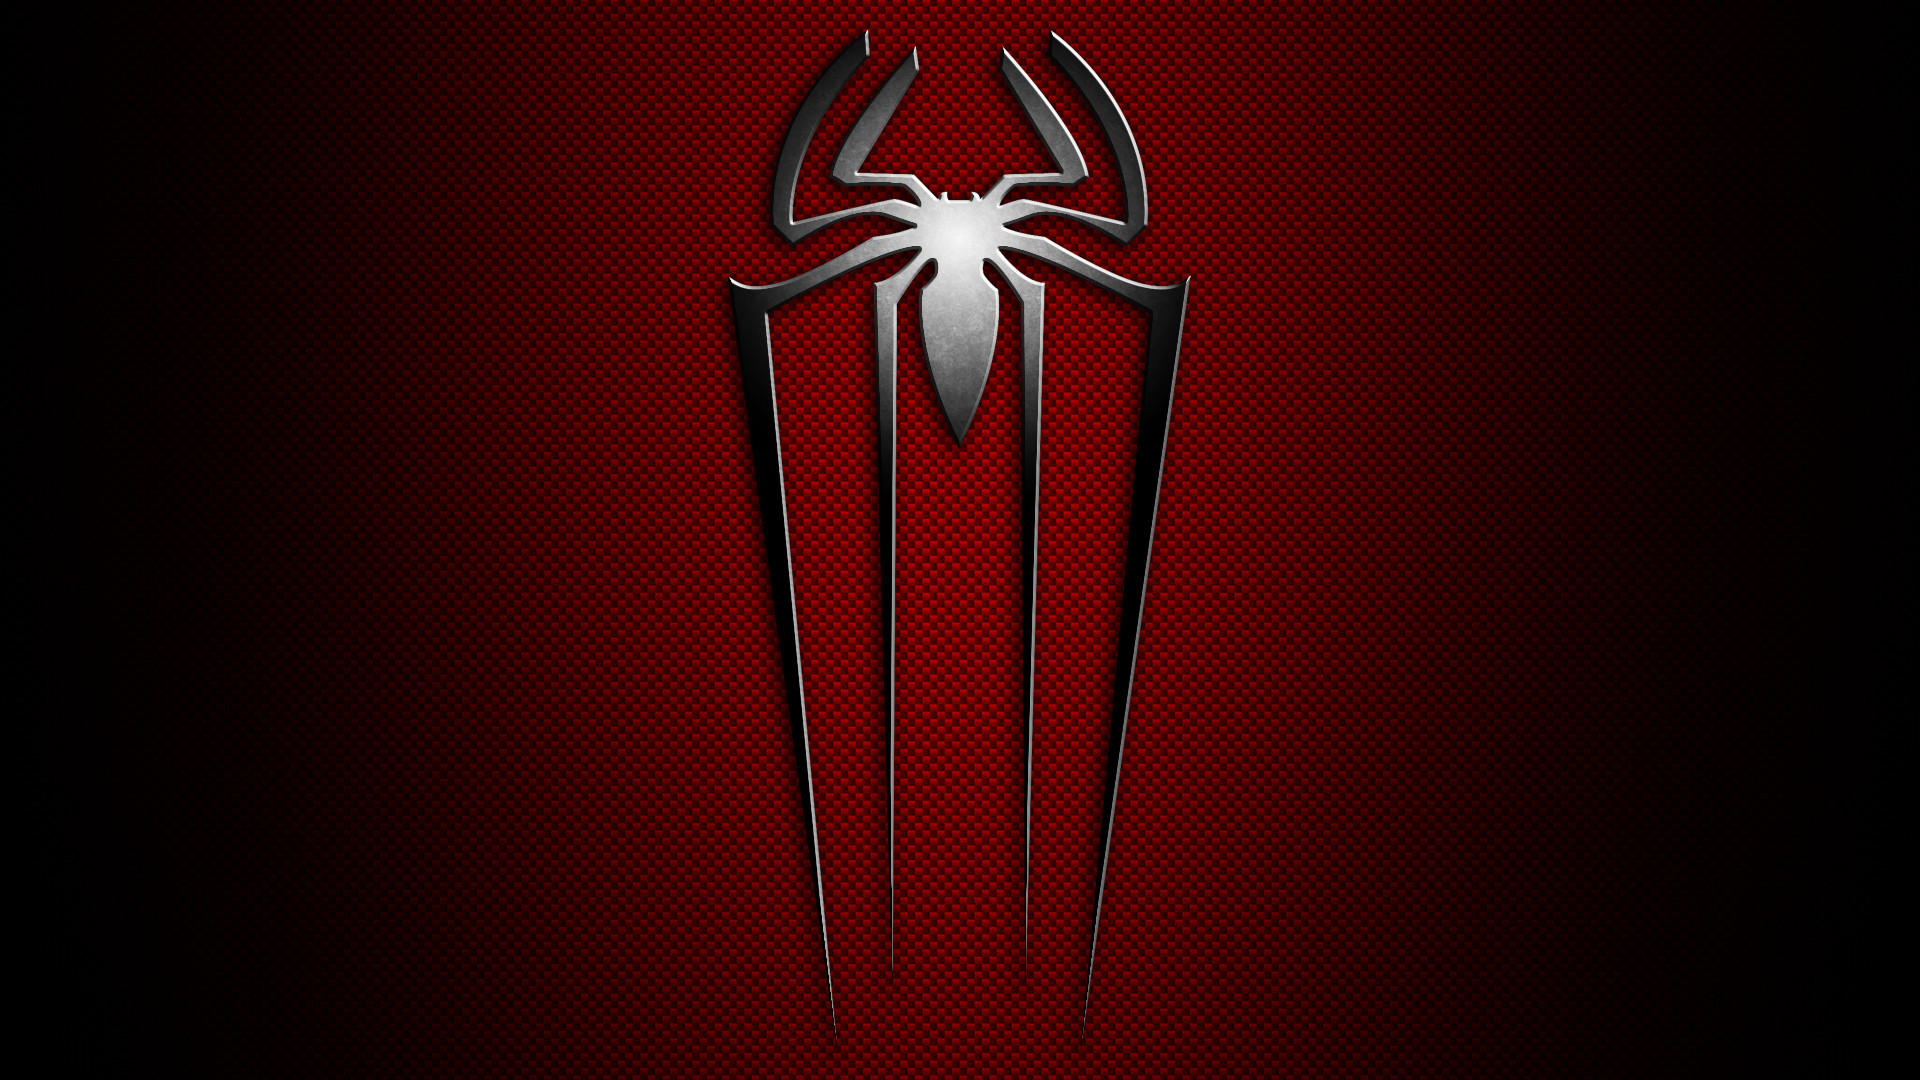 1080x1920 Gallery Of Spiderman Wallpaper Iphone 8211 Entertainmentspiderman2iphone6pluswallpapers Moviespidermaiphone6pluswallpapers F06840